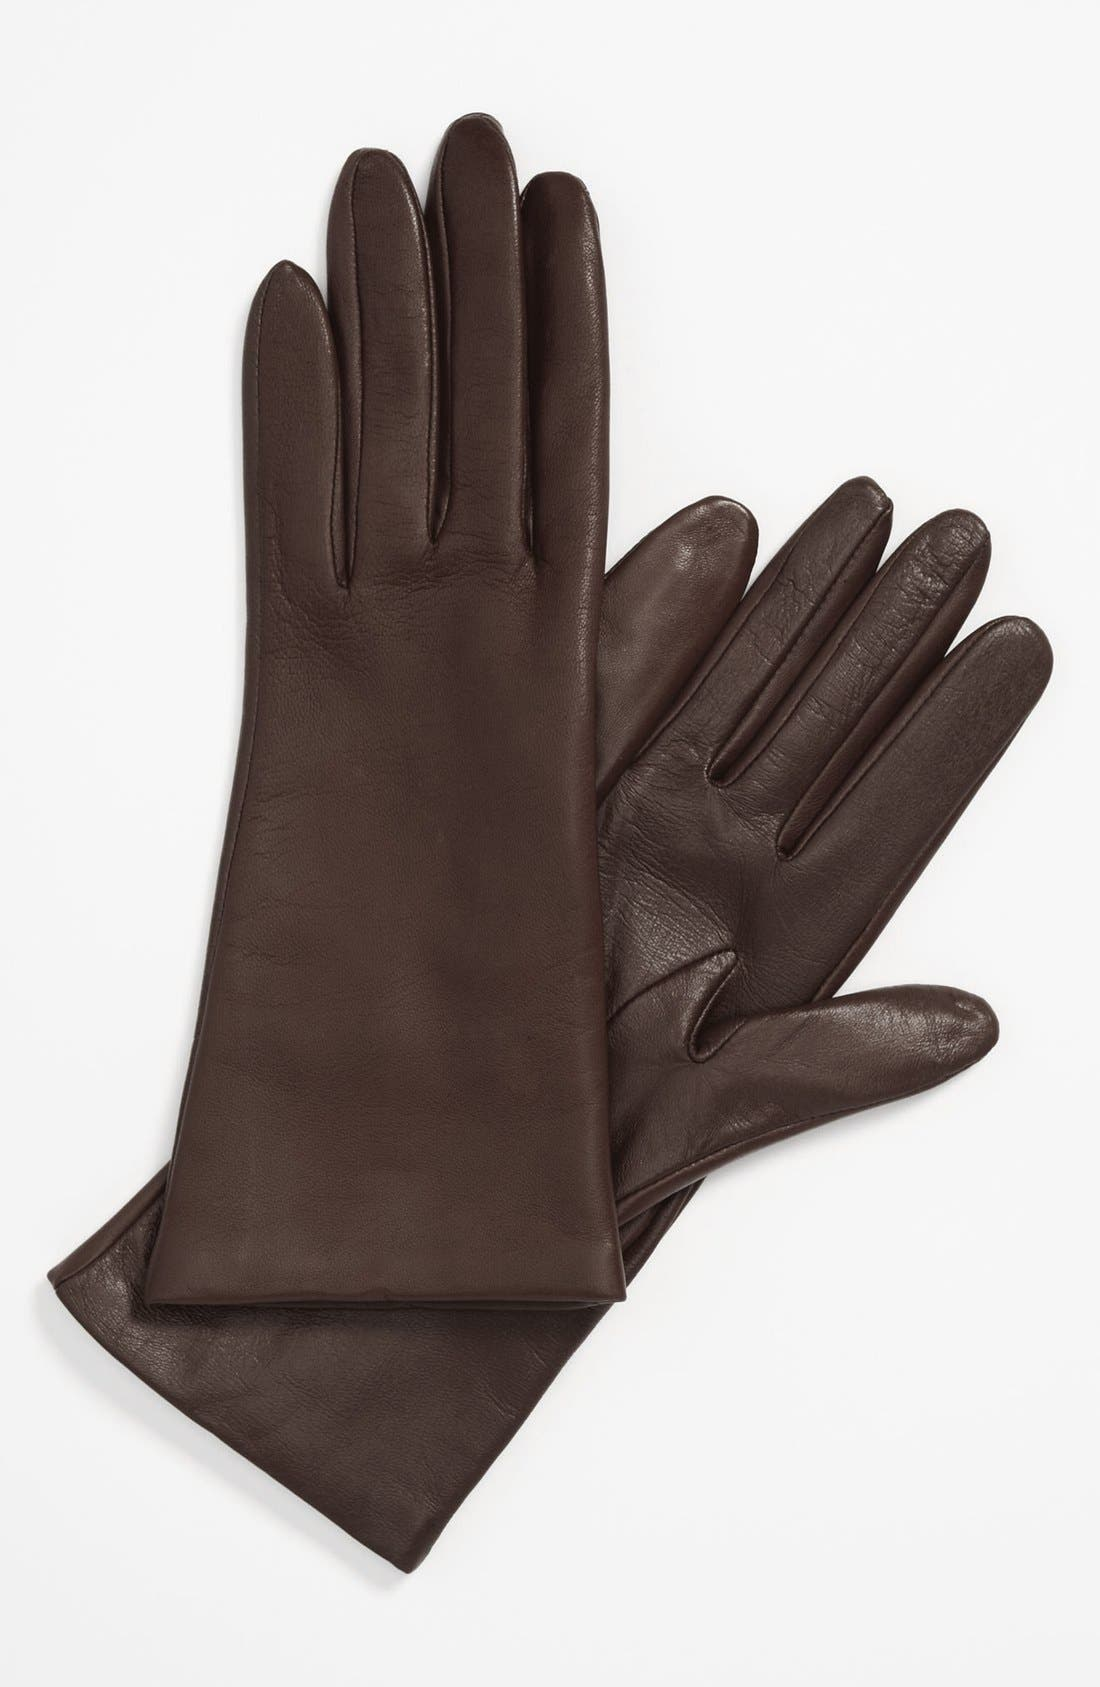 Main Image - Fownes Brothers 'Basic Tech' Cashmere Lined Leather Gloves (Nordstrom Exclusive)